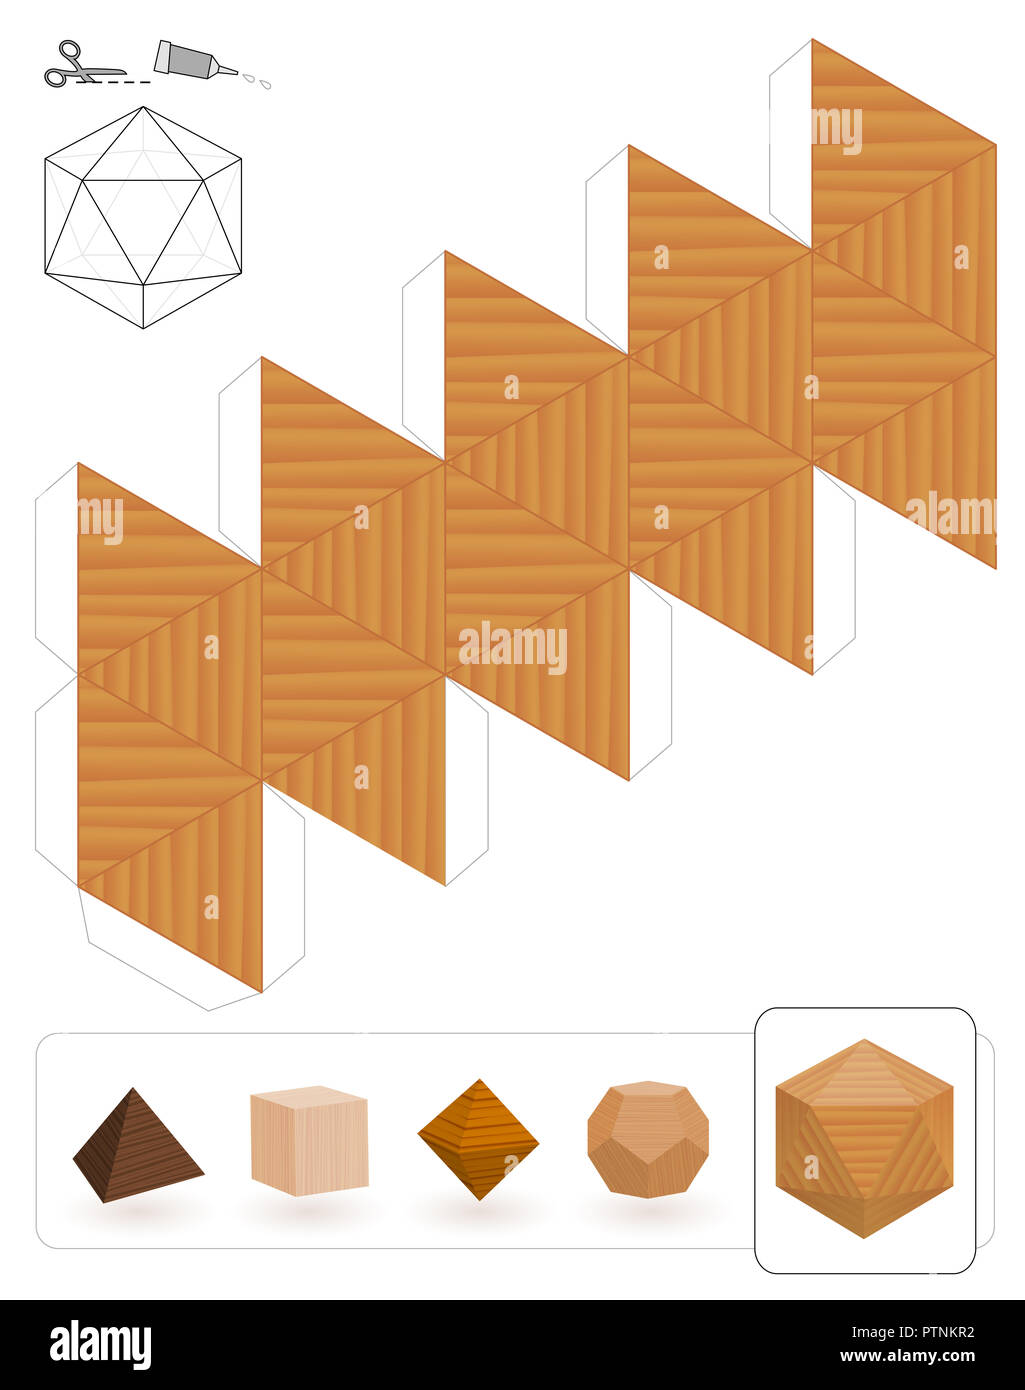 Platonic solids. Template of a icosahedron with wooden texture to make a 3d paper model out of the triangle net. - Stock Image